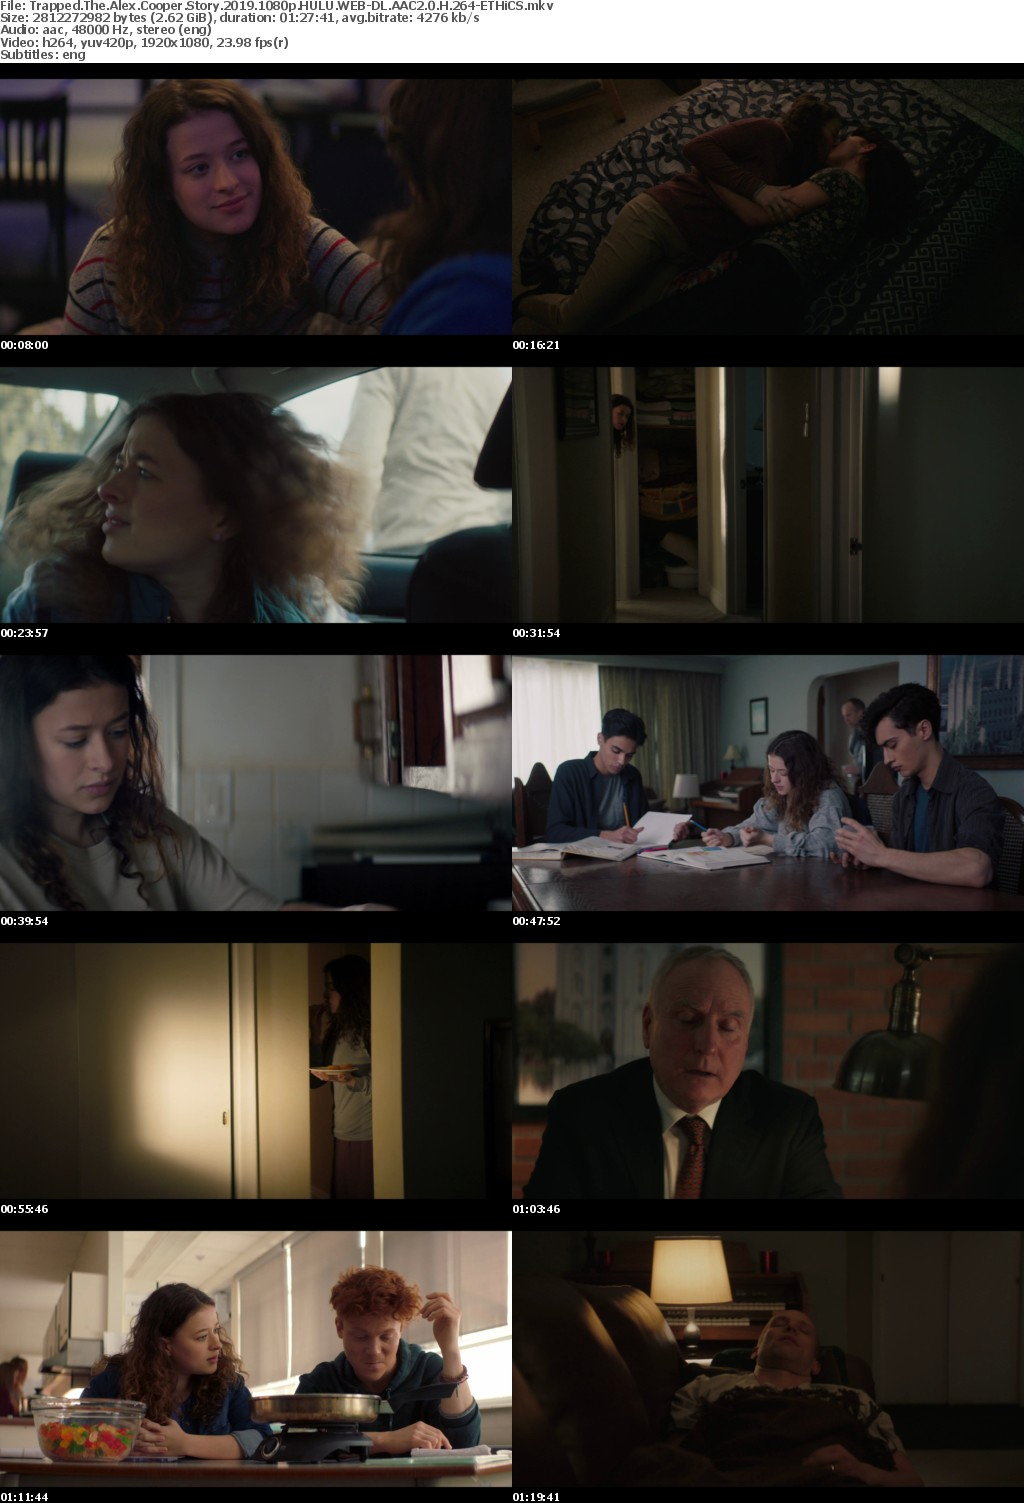 Trapped The Alex Cooper Story 2019 1080p HULU WEBRip AAC2 0 x264-ETHiCS